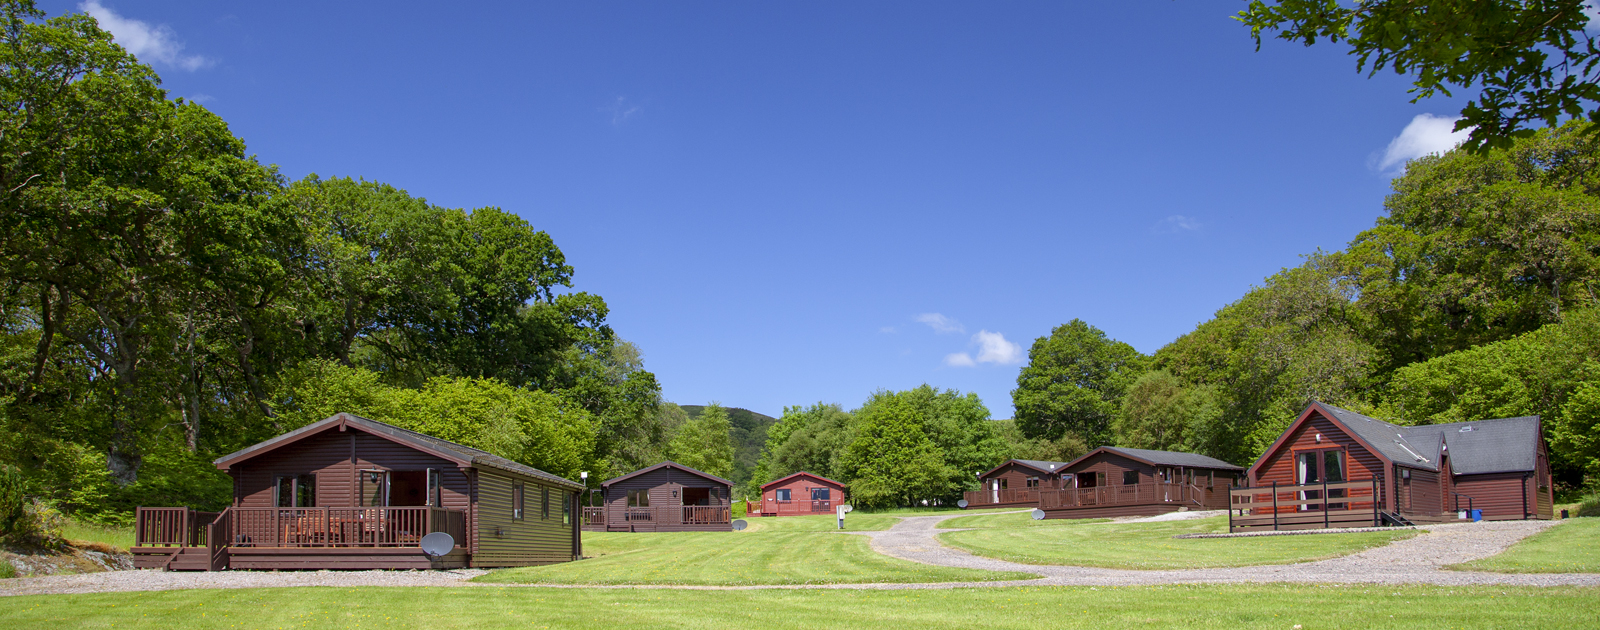 Resipole Holiday Homes